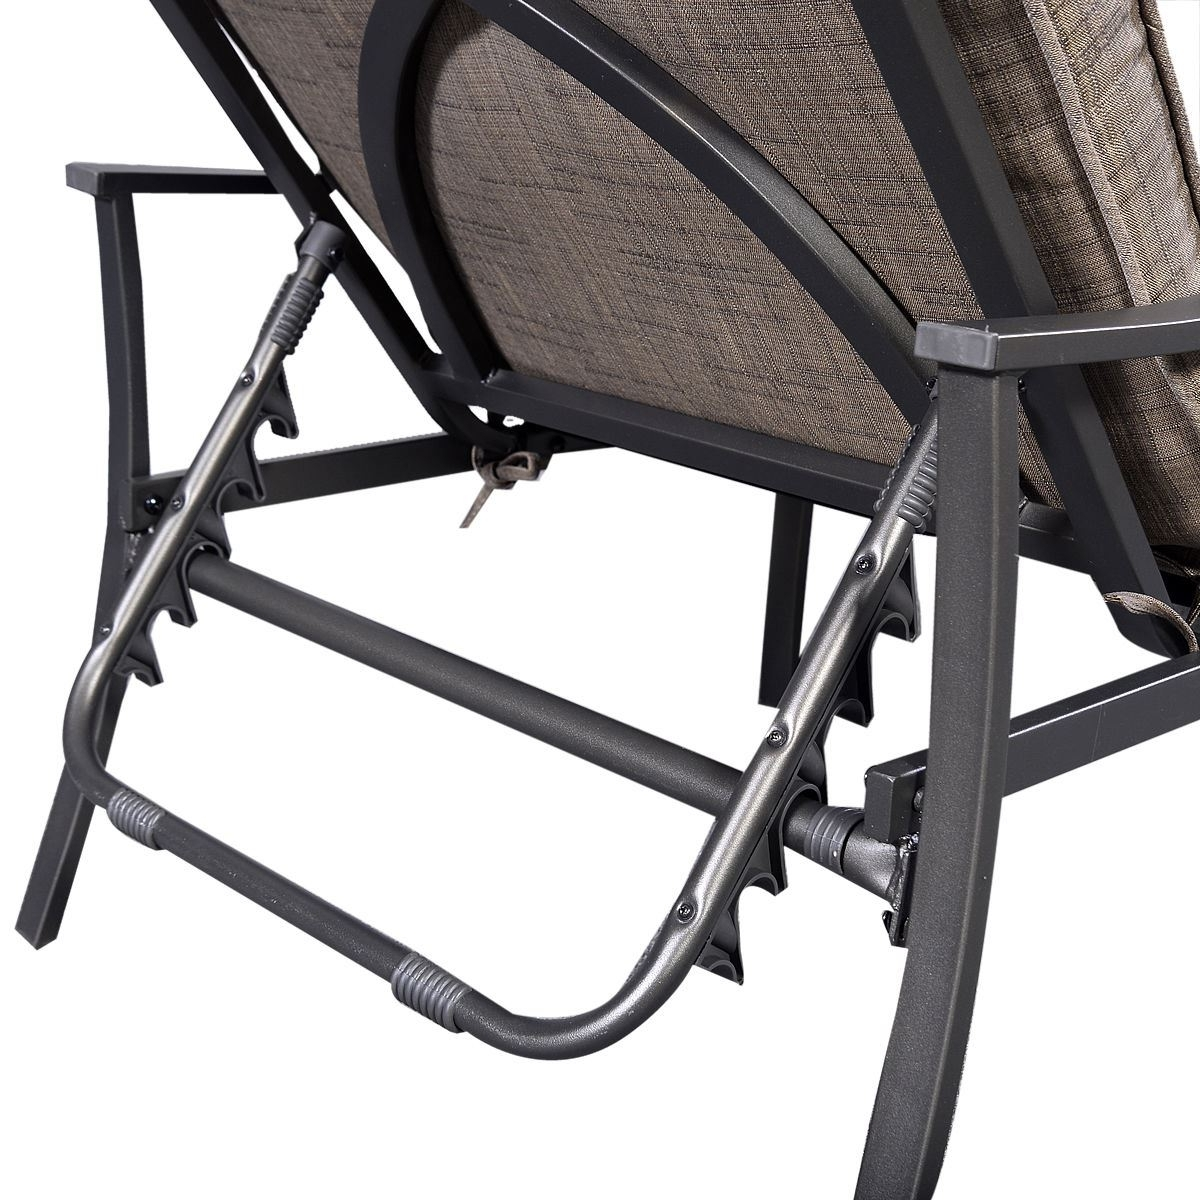 Fashionable Adjustable Pool Chaise Lounge Chair Recliners Within Furniture: Steel Frame Patio Adjustable Recliner Chair For Pool (View 5 of 15)